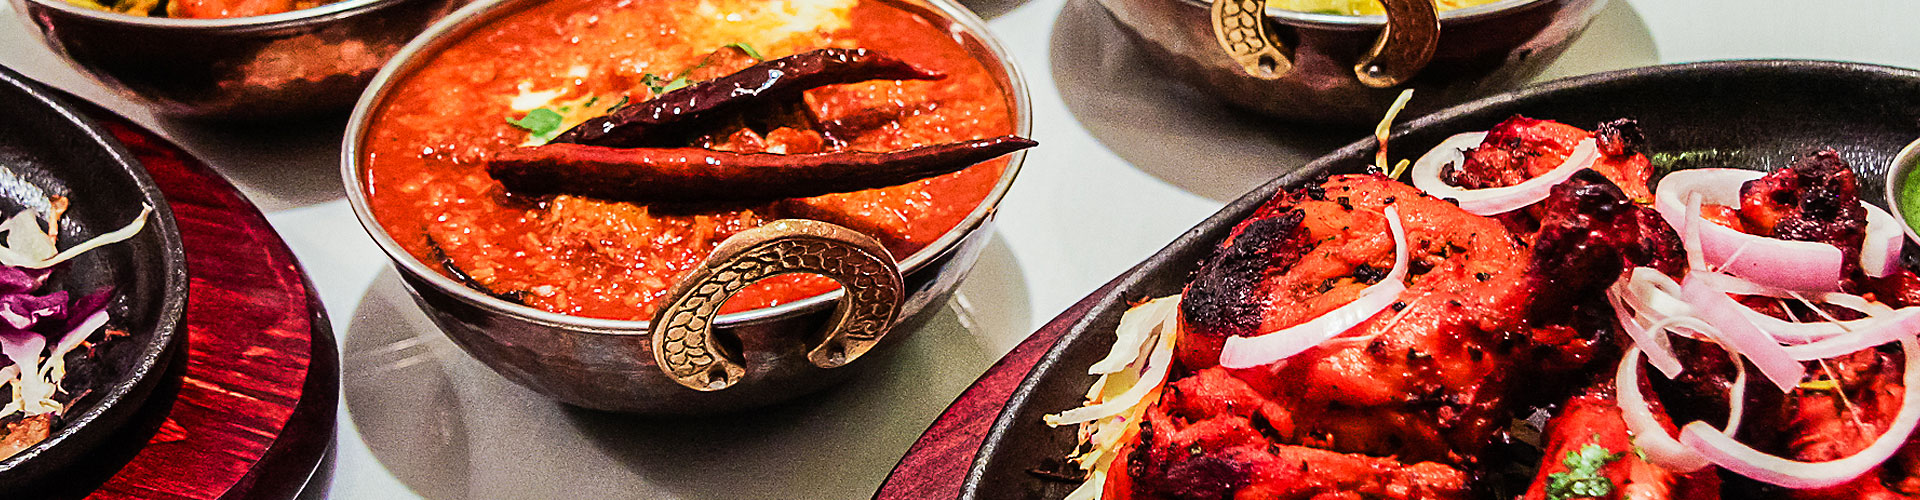 Indian-Restaurant-Calgary-Reservation